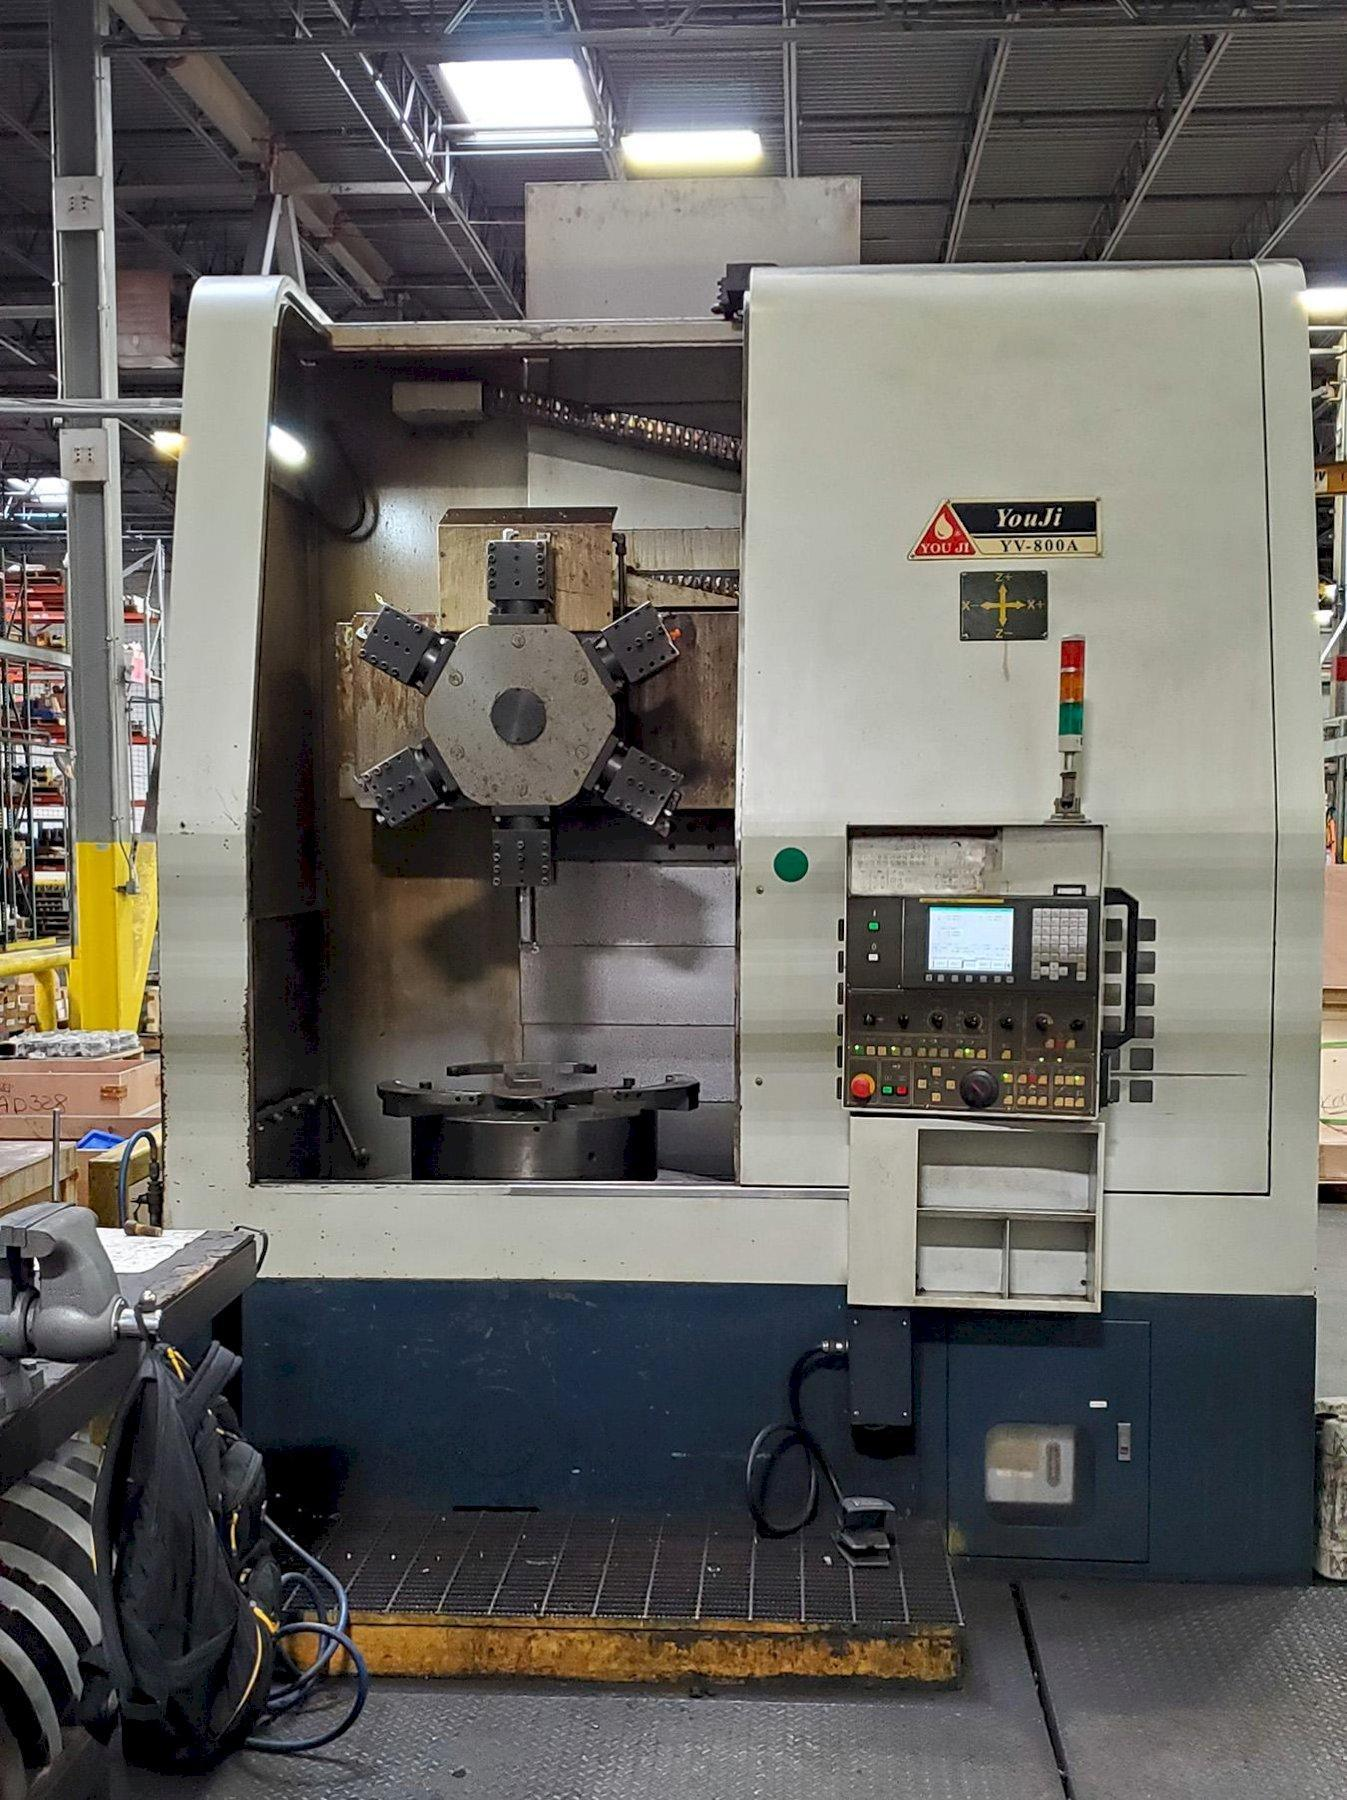 USED, YOU JI YV-800A CNC VERTICAL TURRET LATHE WITH SIX STATION HEX TURRET